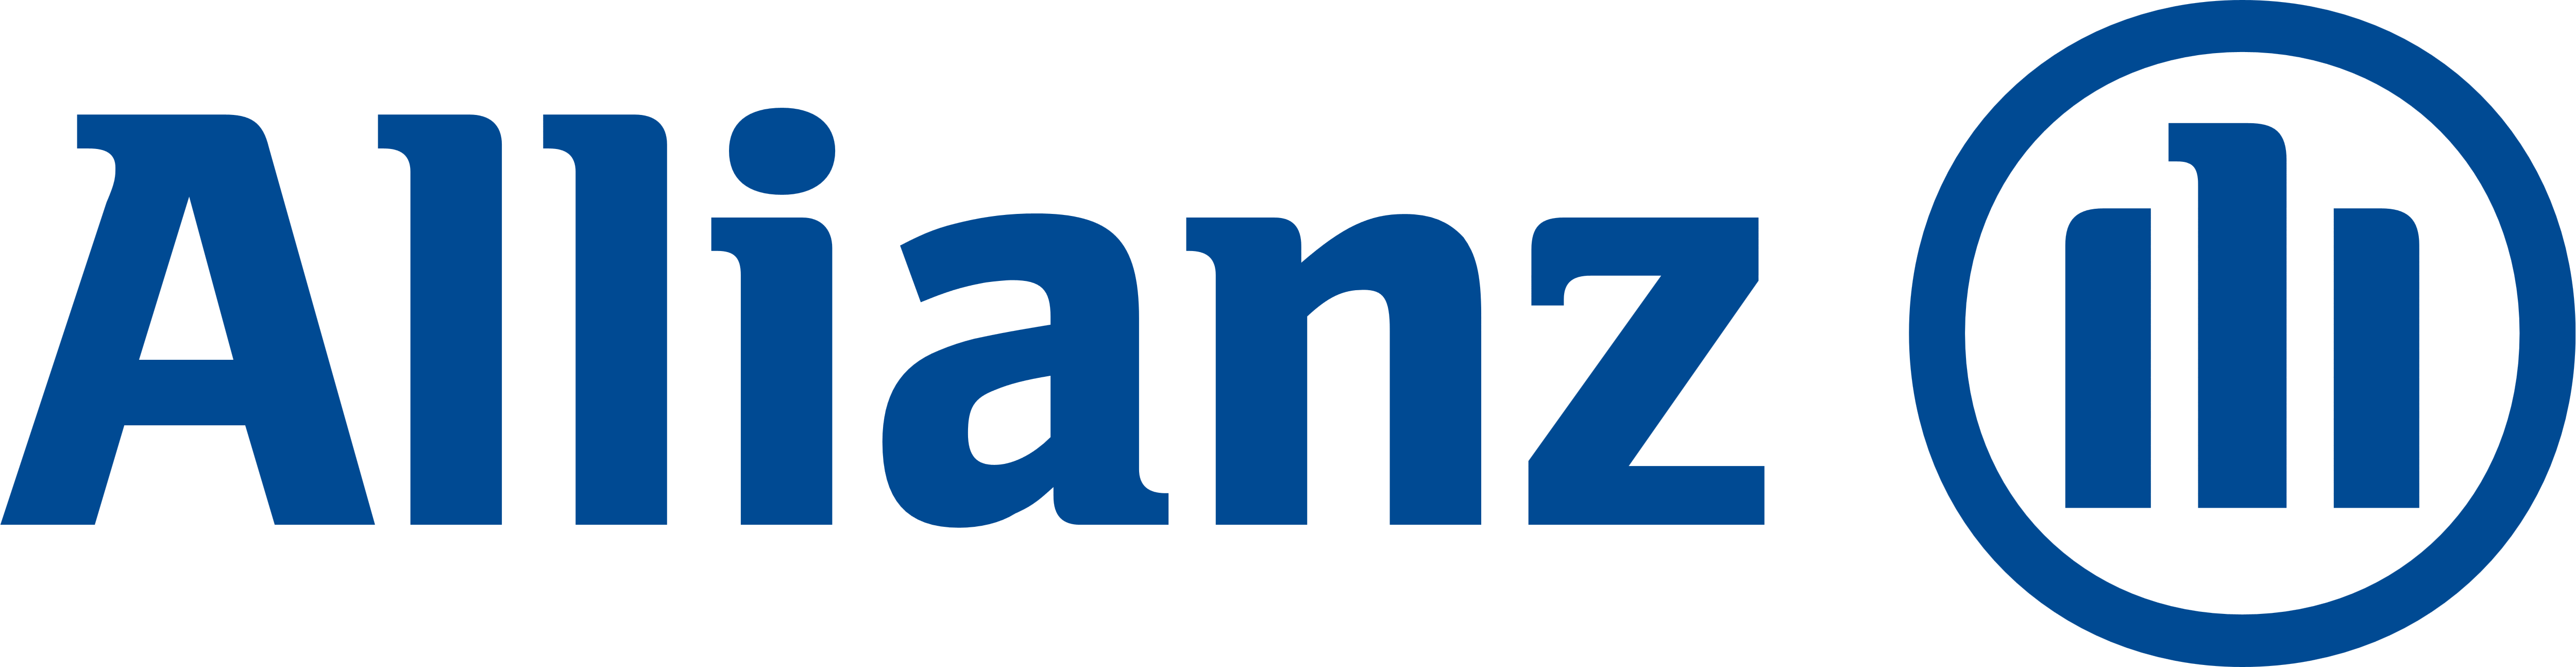 Allianz Logos Download